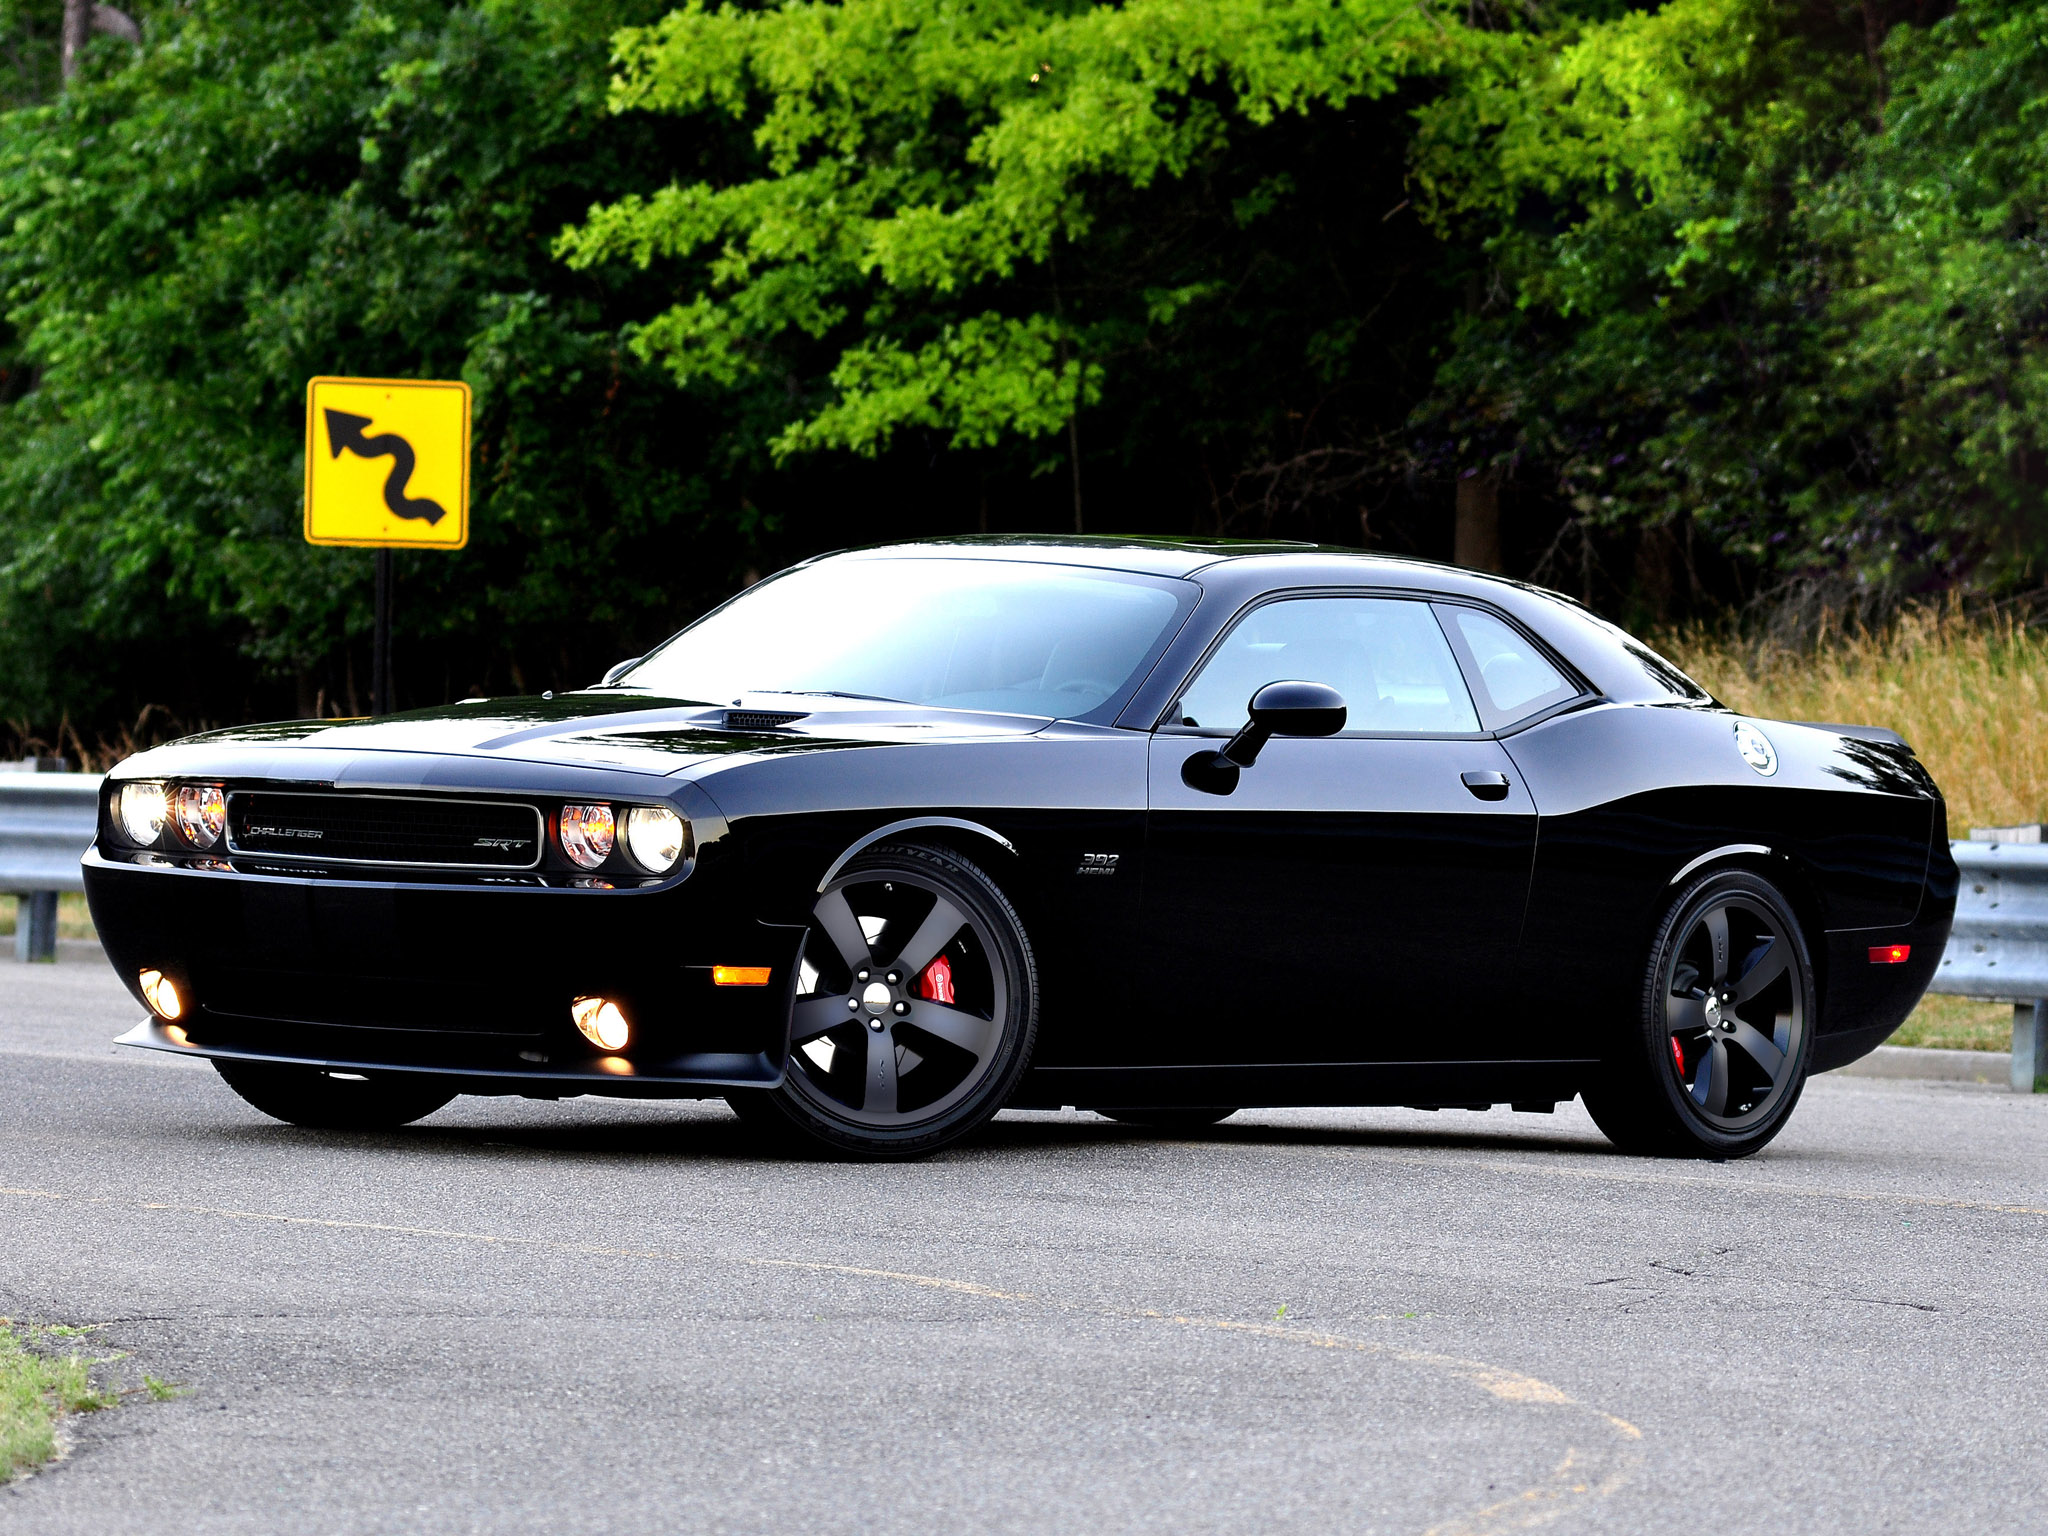 Dodge Challenger Srt8 2013 Wallpaper 2013 Dodge Challenger Srt8